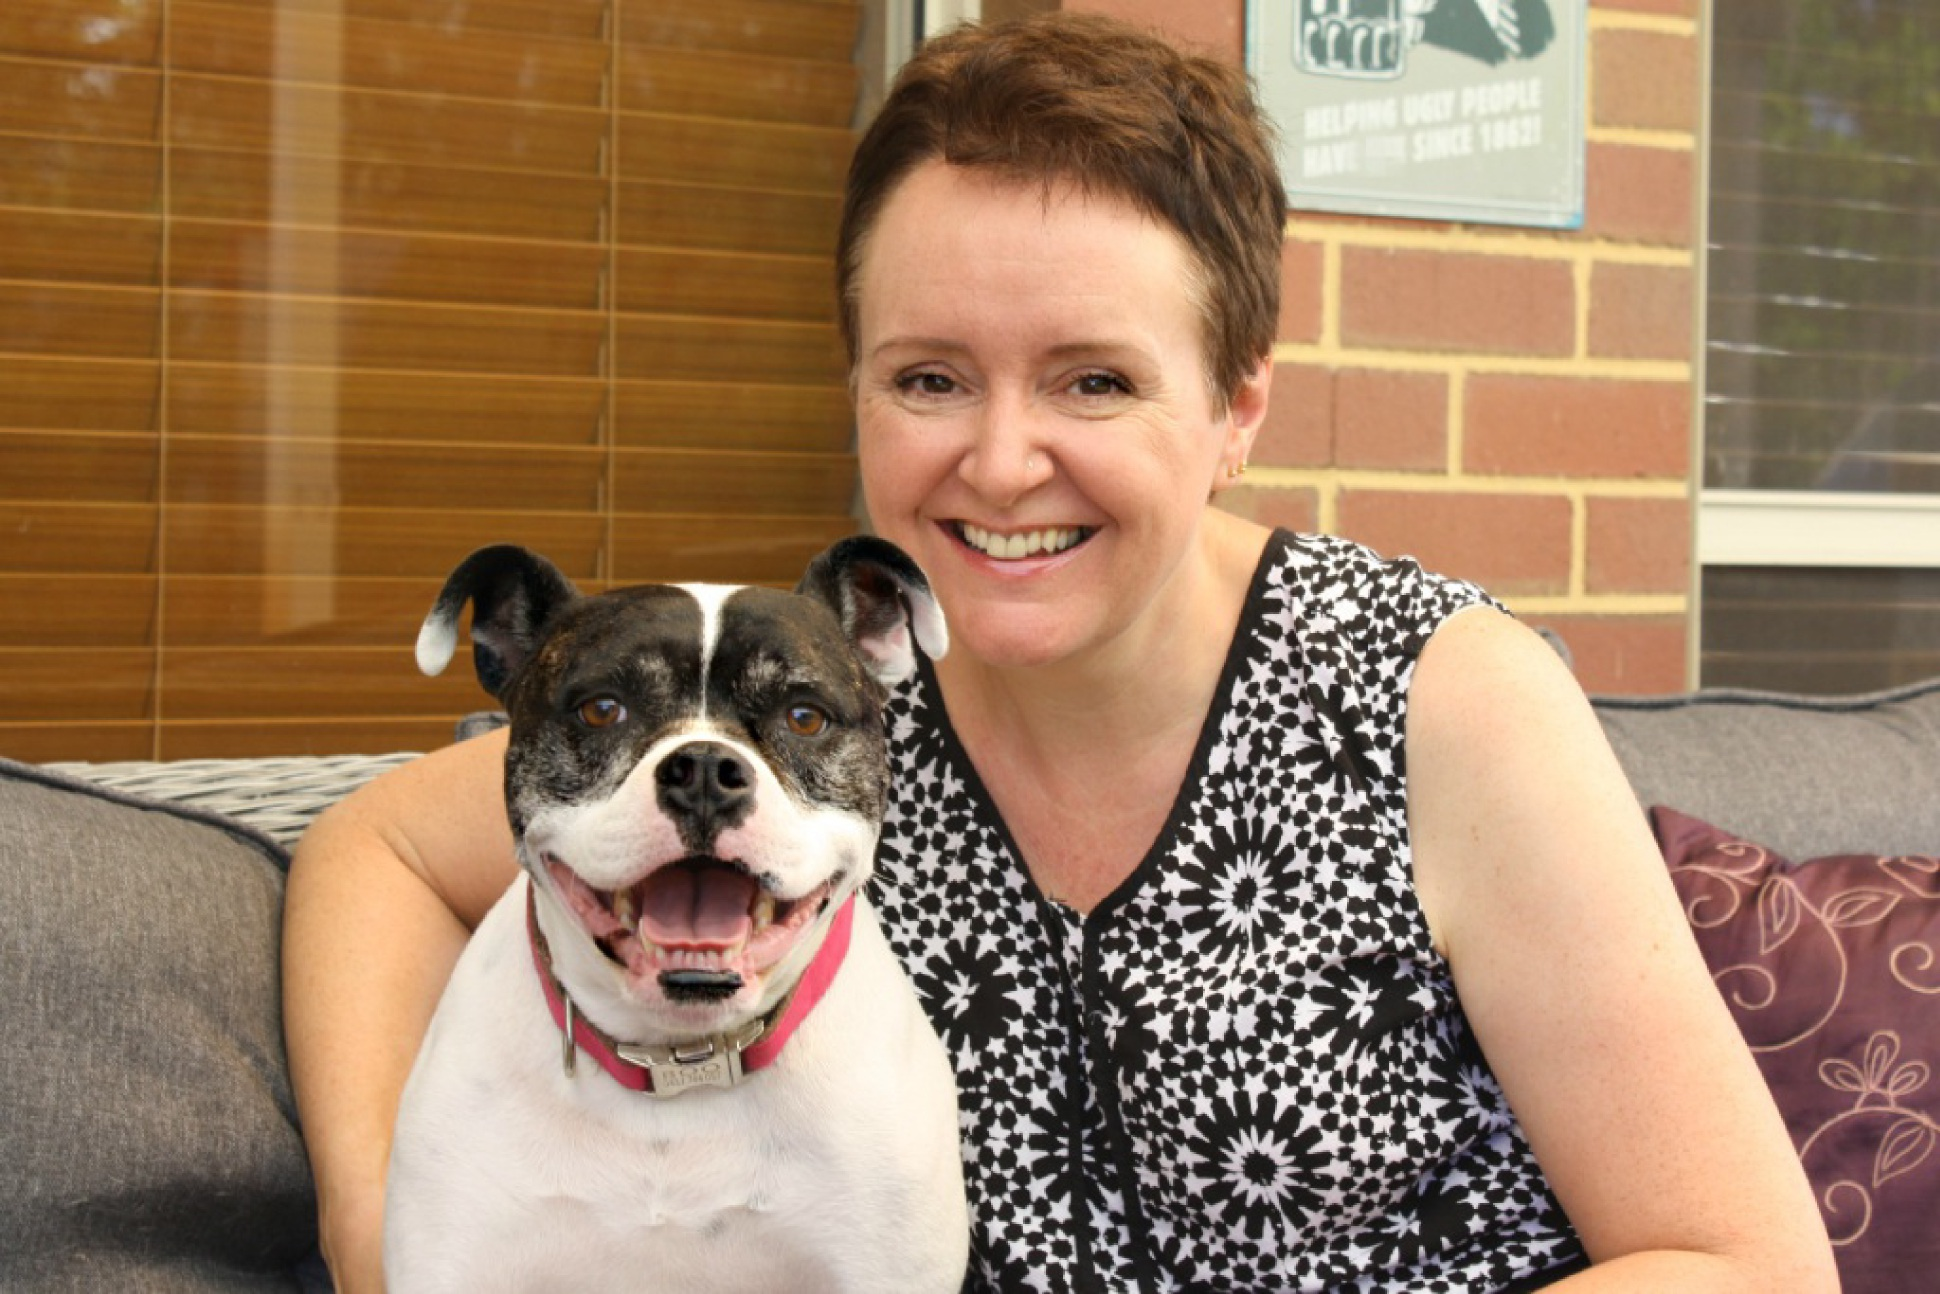 Michelle Gaynor with her much-loved rescue dog Boo.